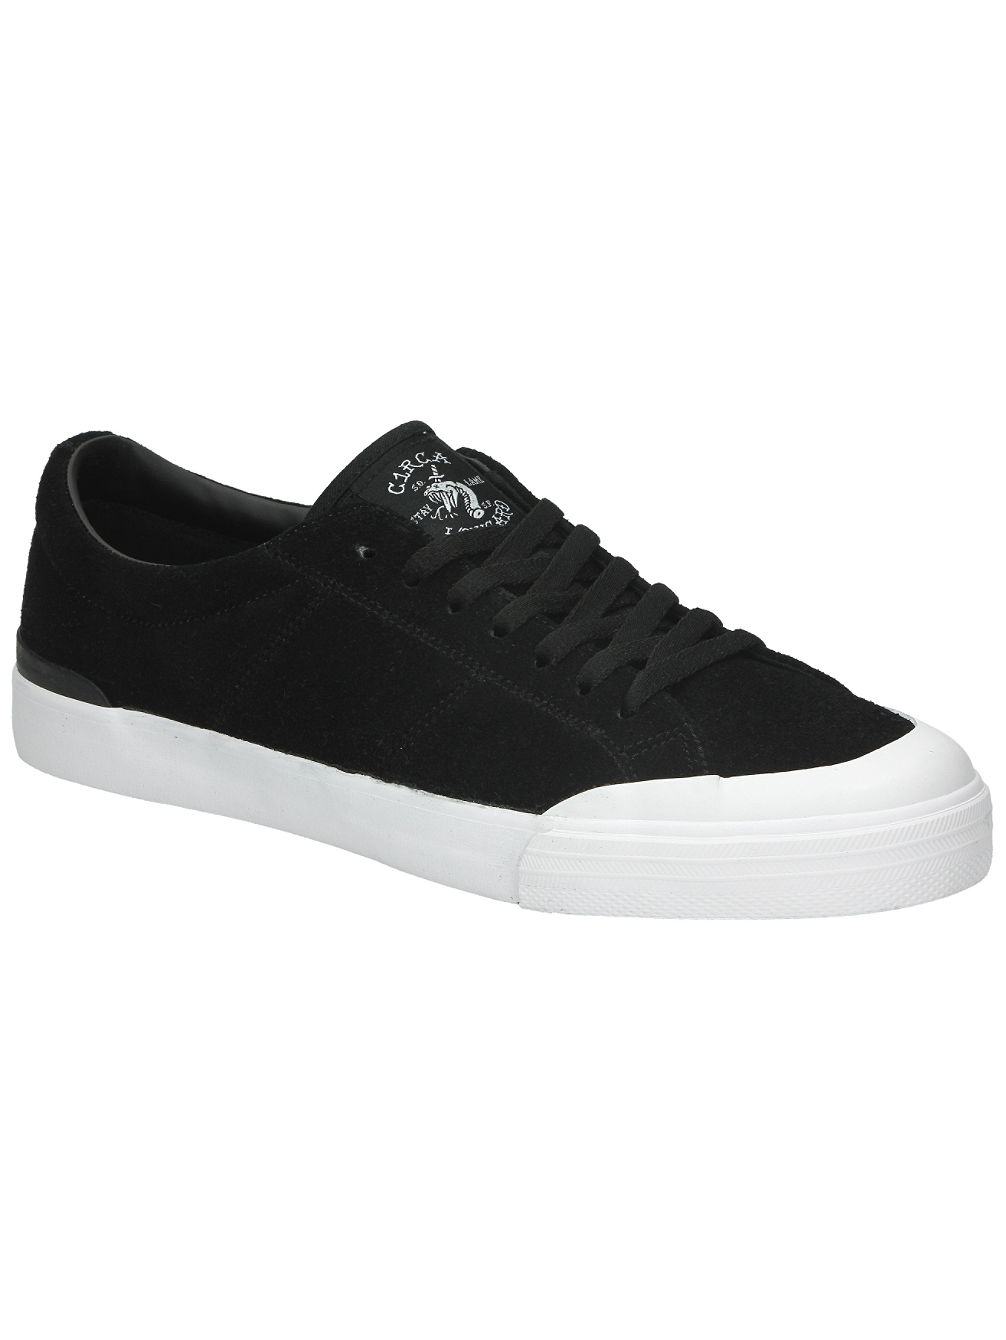 Buy Circa Shoes Online